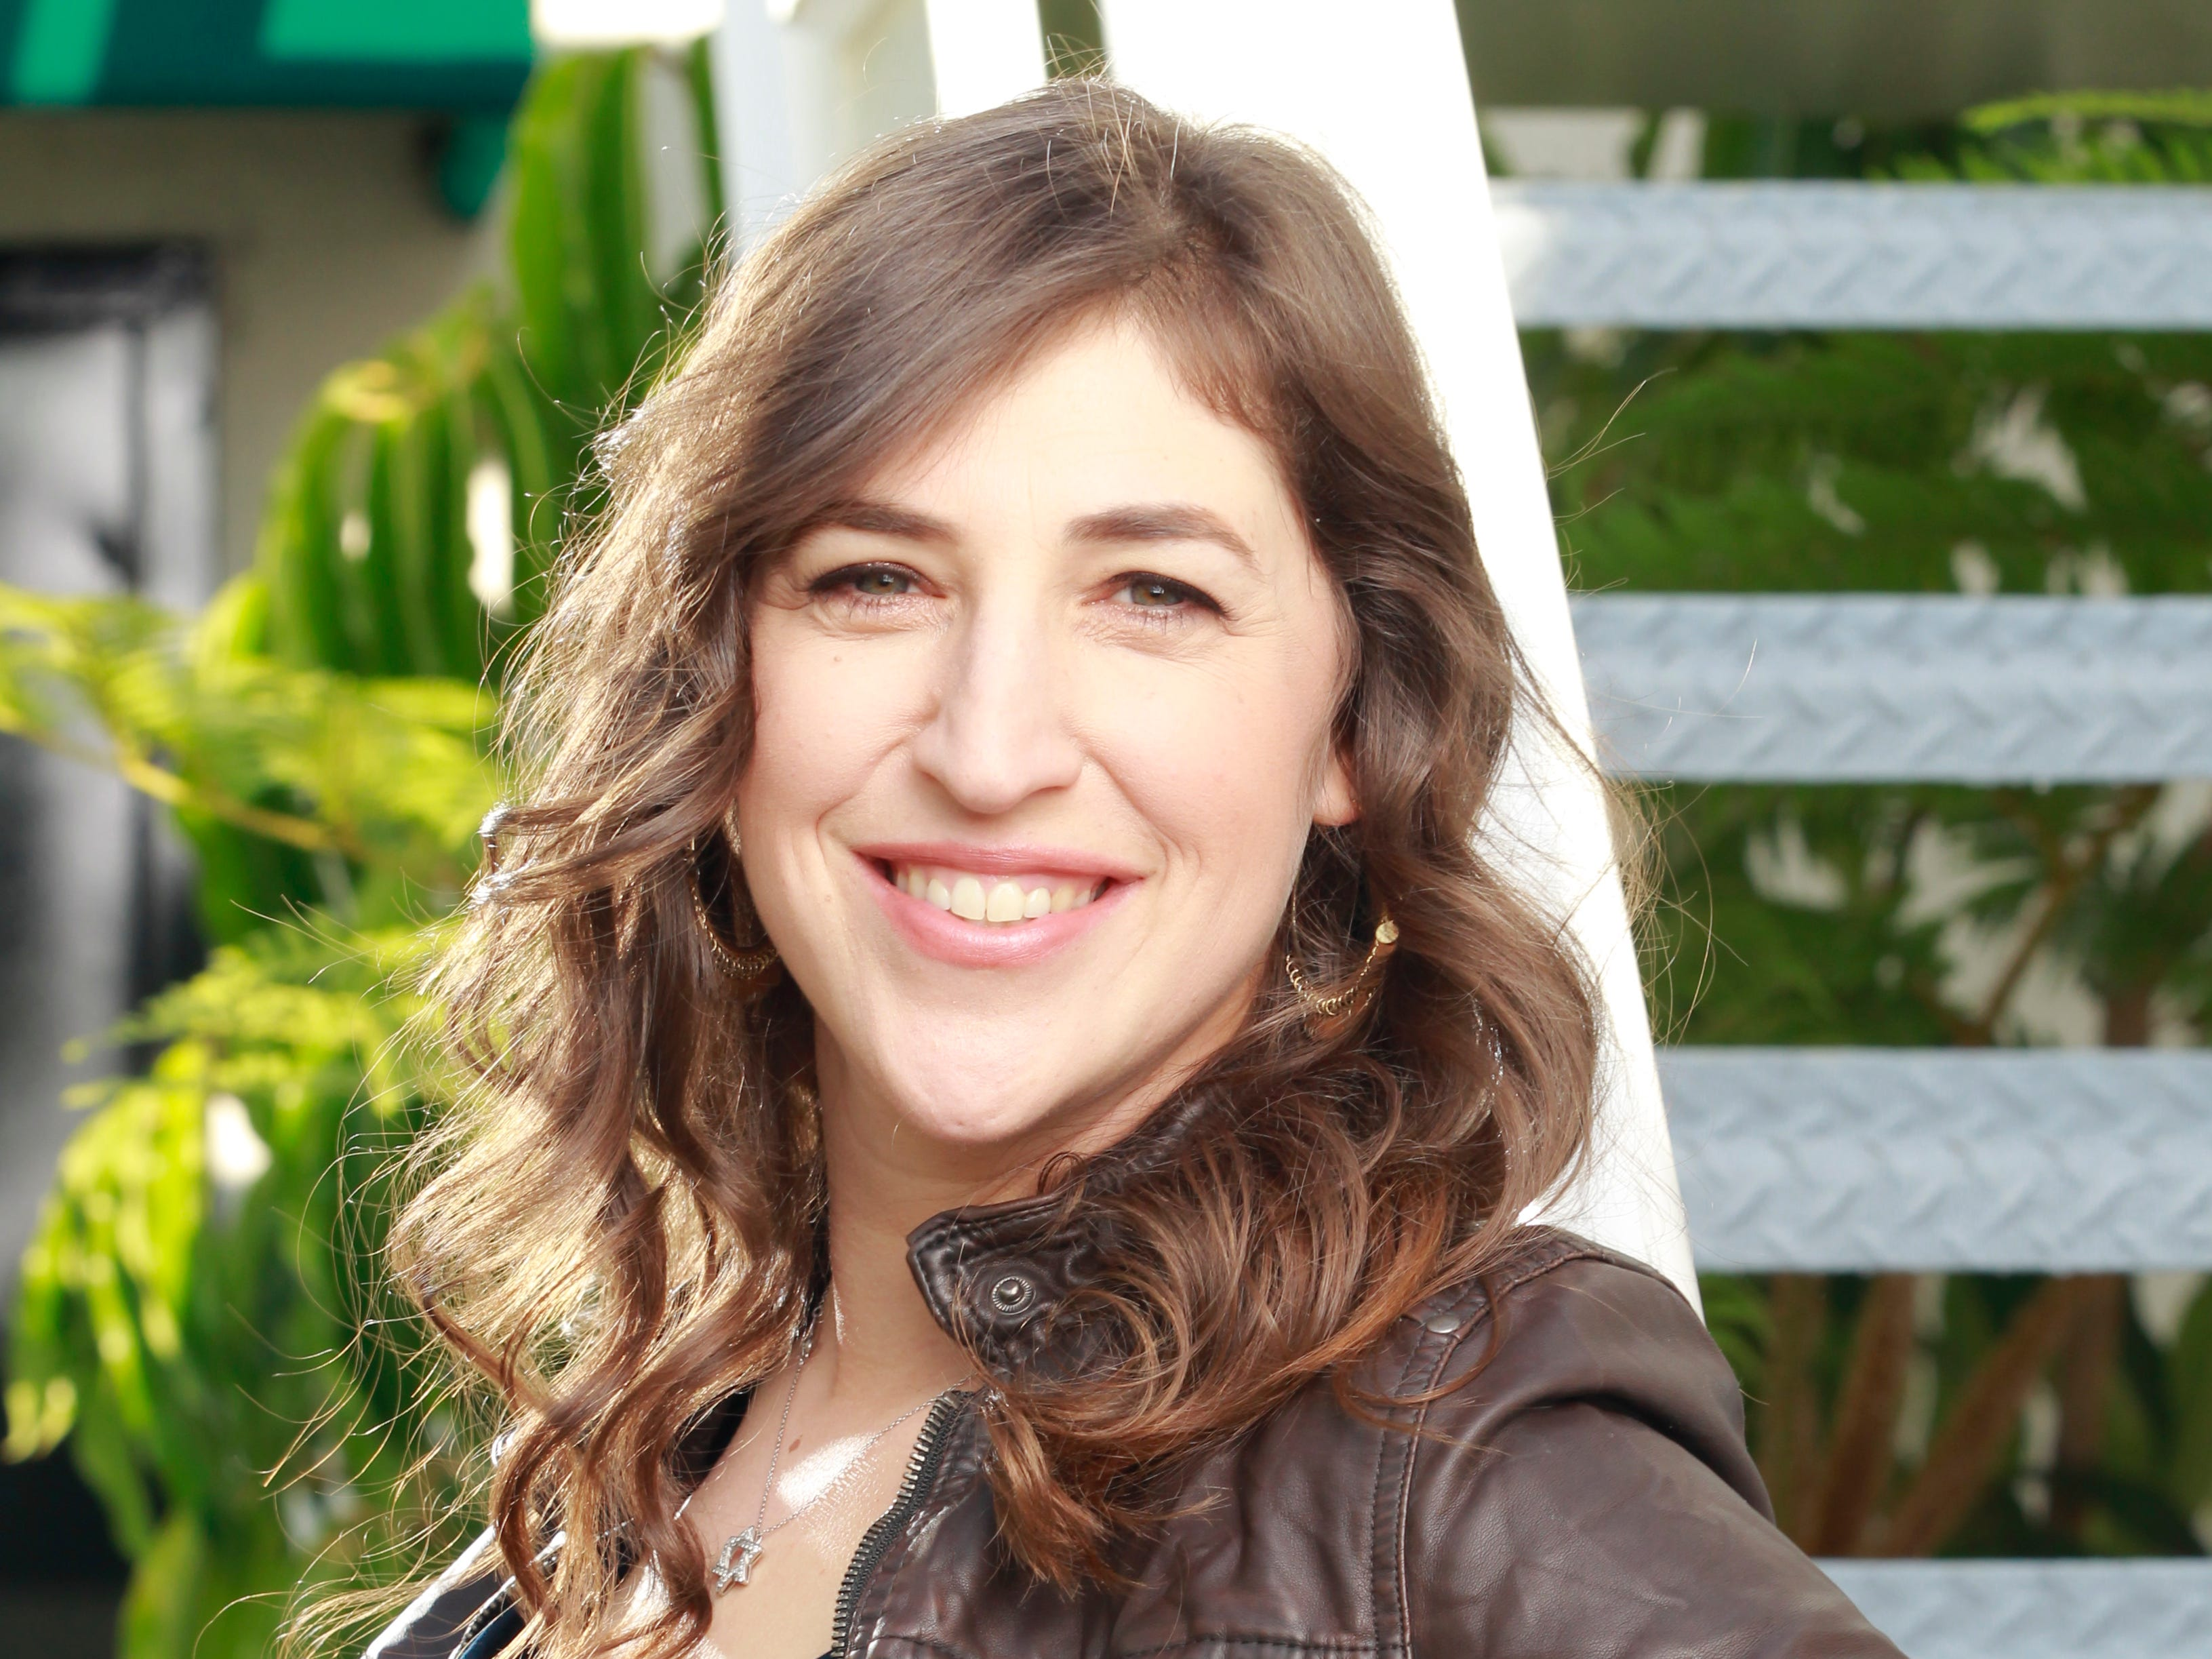 """ORG XMIT: DM 41110 BIGBANGWOMEN 11/14/2011  11/14/11 11:34:16 -- Los Angeles, CA, U.S.A BIG BANG WOMEN -- Mayim Bialik is a  love interests for one of the geeks on the television series """"Big Bang Theory.""""  Photographed at CBS Television City in Los Angeles, CA  Photo by Dan MacMedan, USA TODAY contract photographer   [Via MerlinFTP Drop]"""